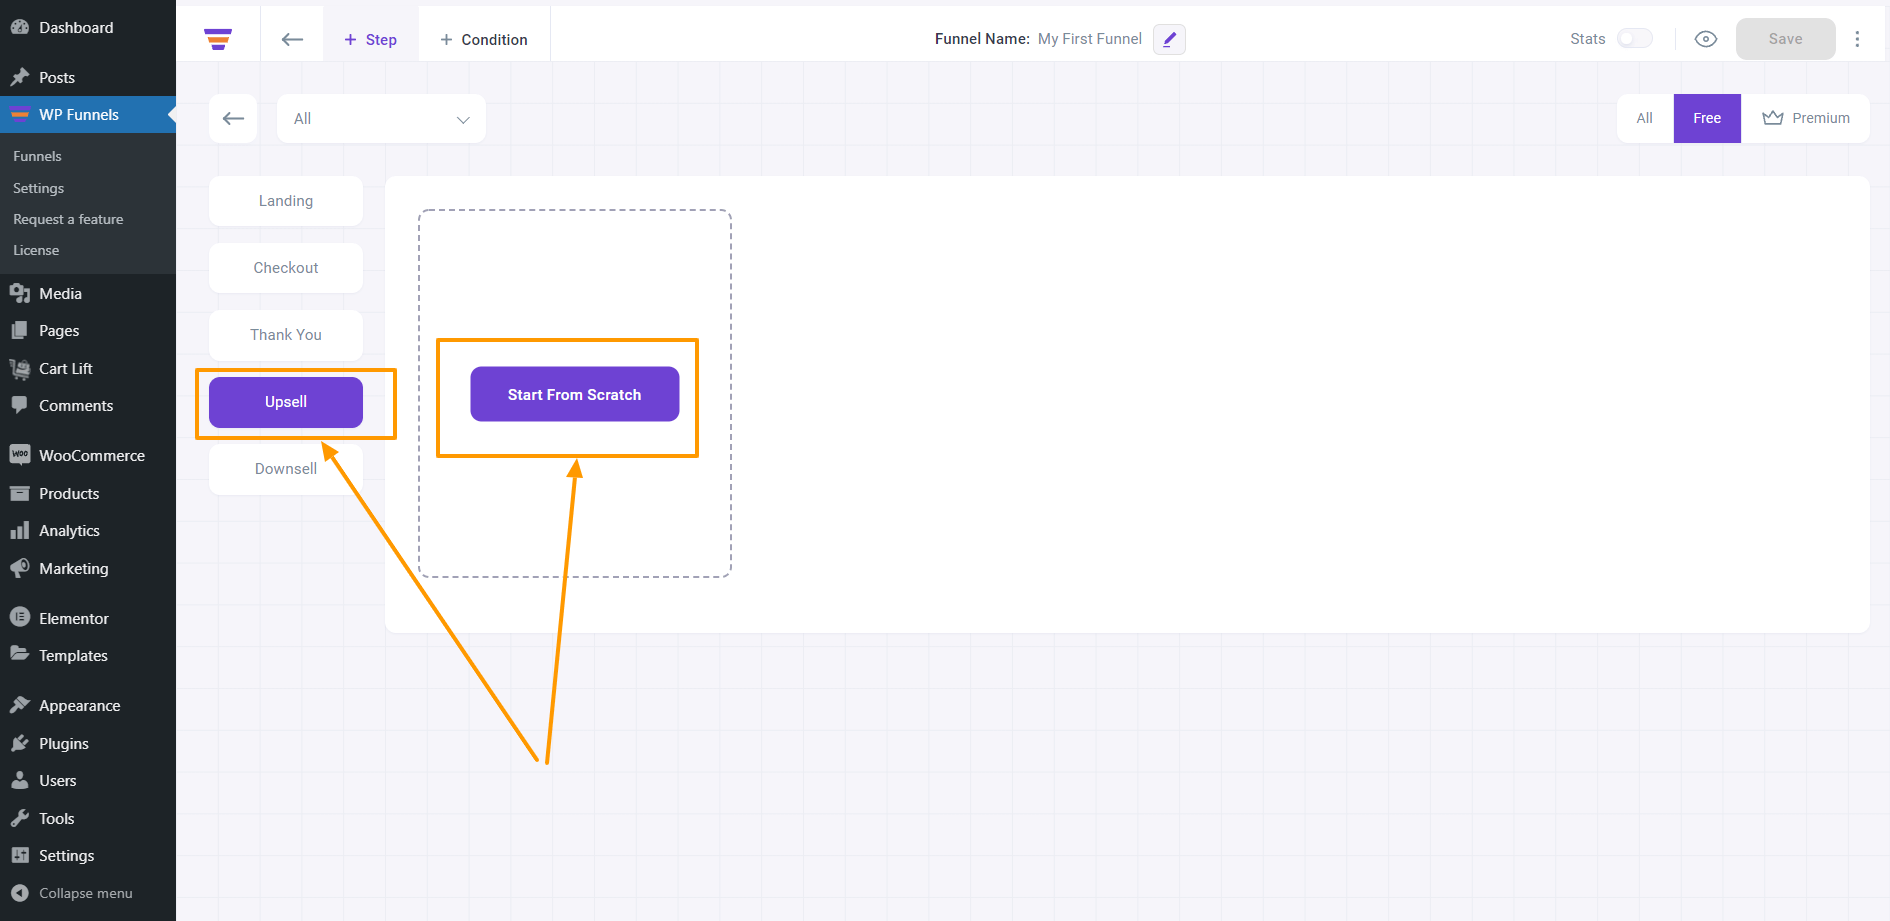 WP Funnels - Select Upsell From Step Selection Menu